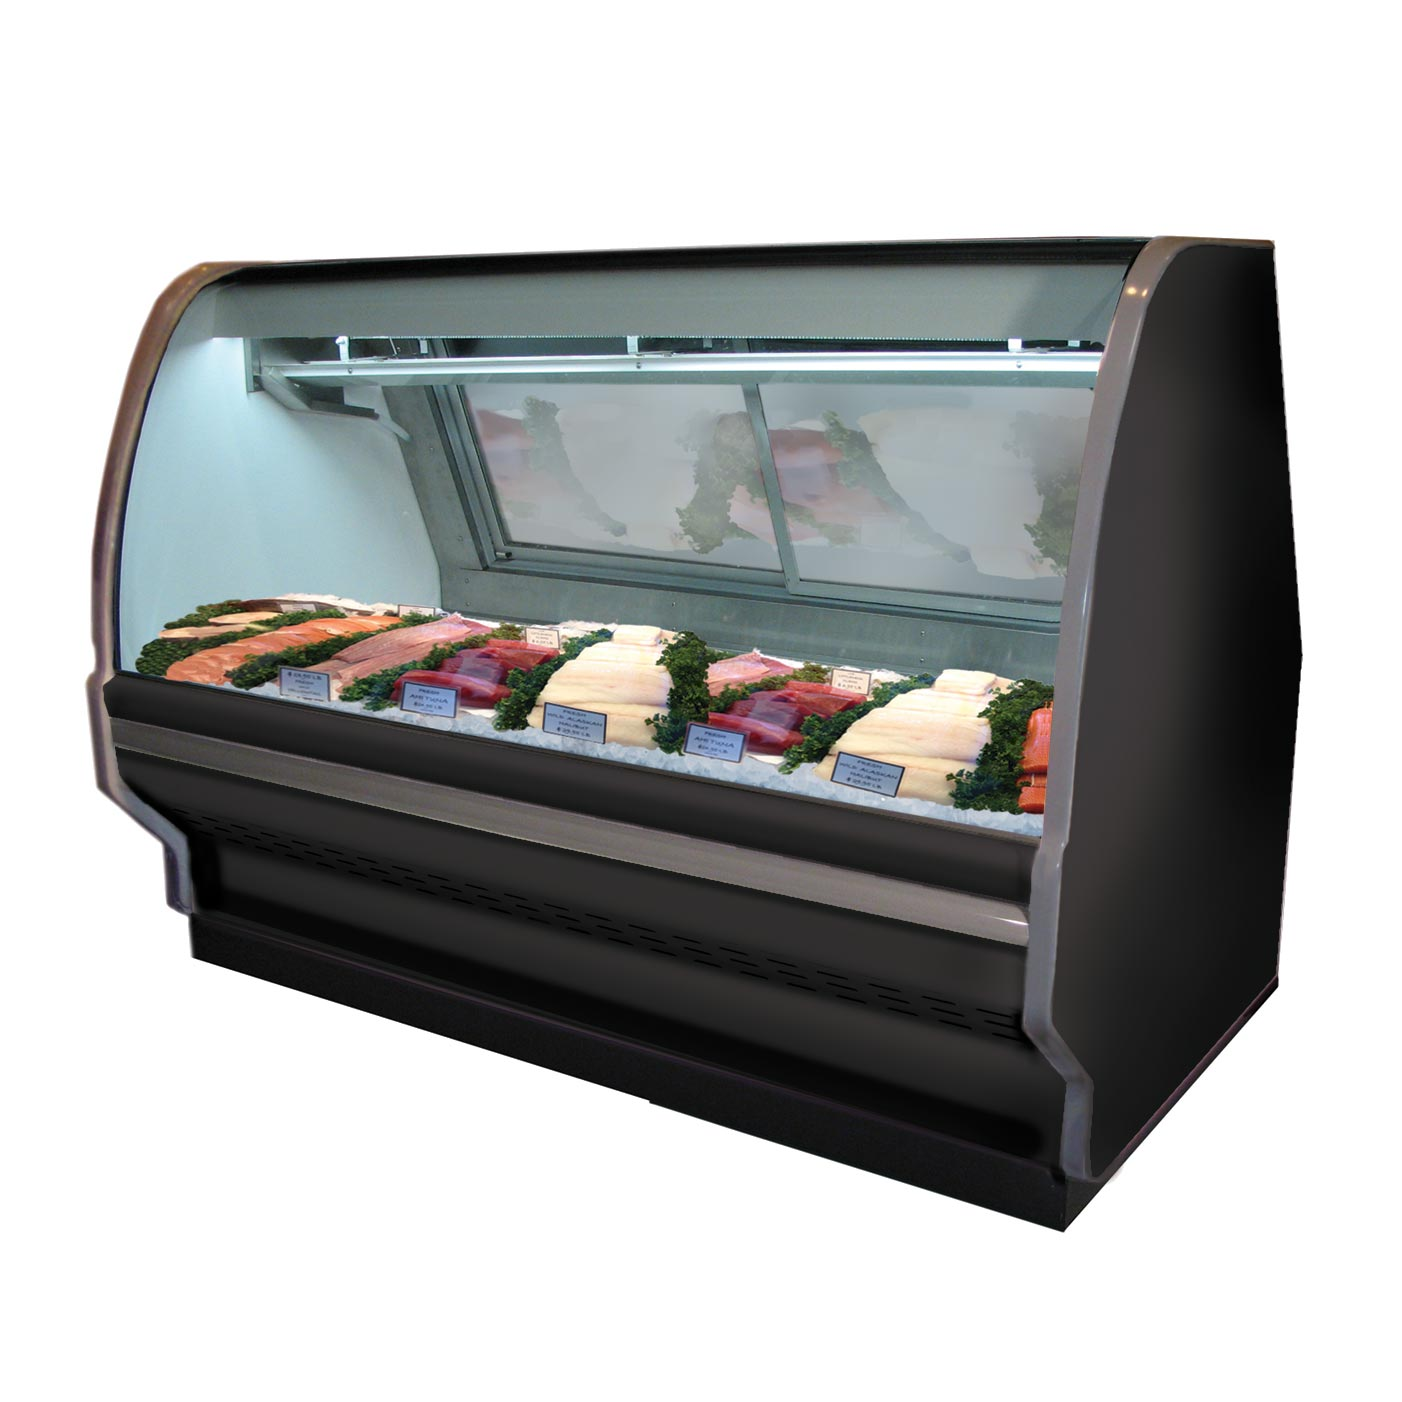 Howard-McCray R-CFS40E-6C-BE-LED display case, deli seafood / poultry